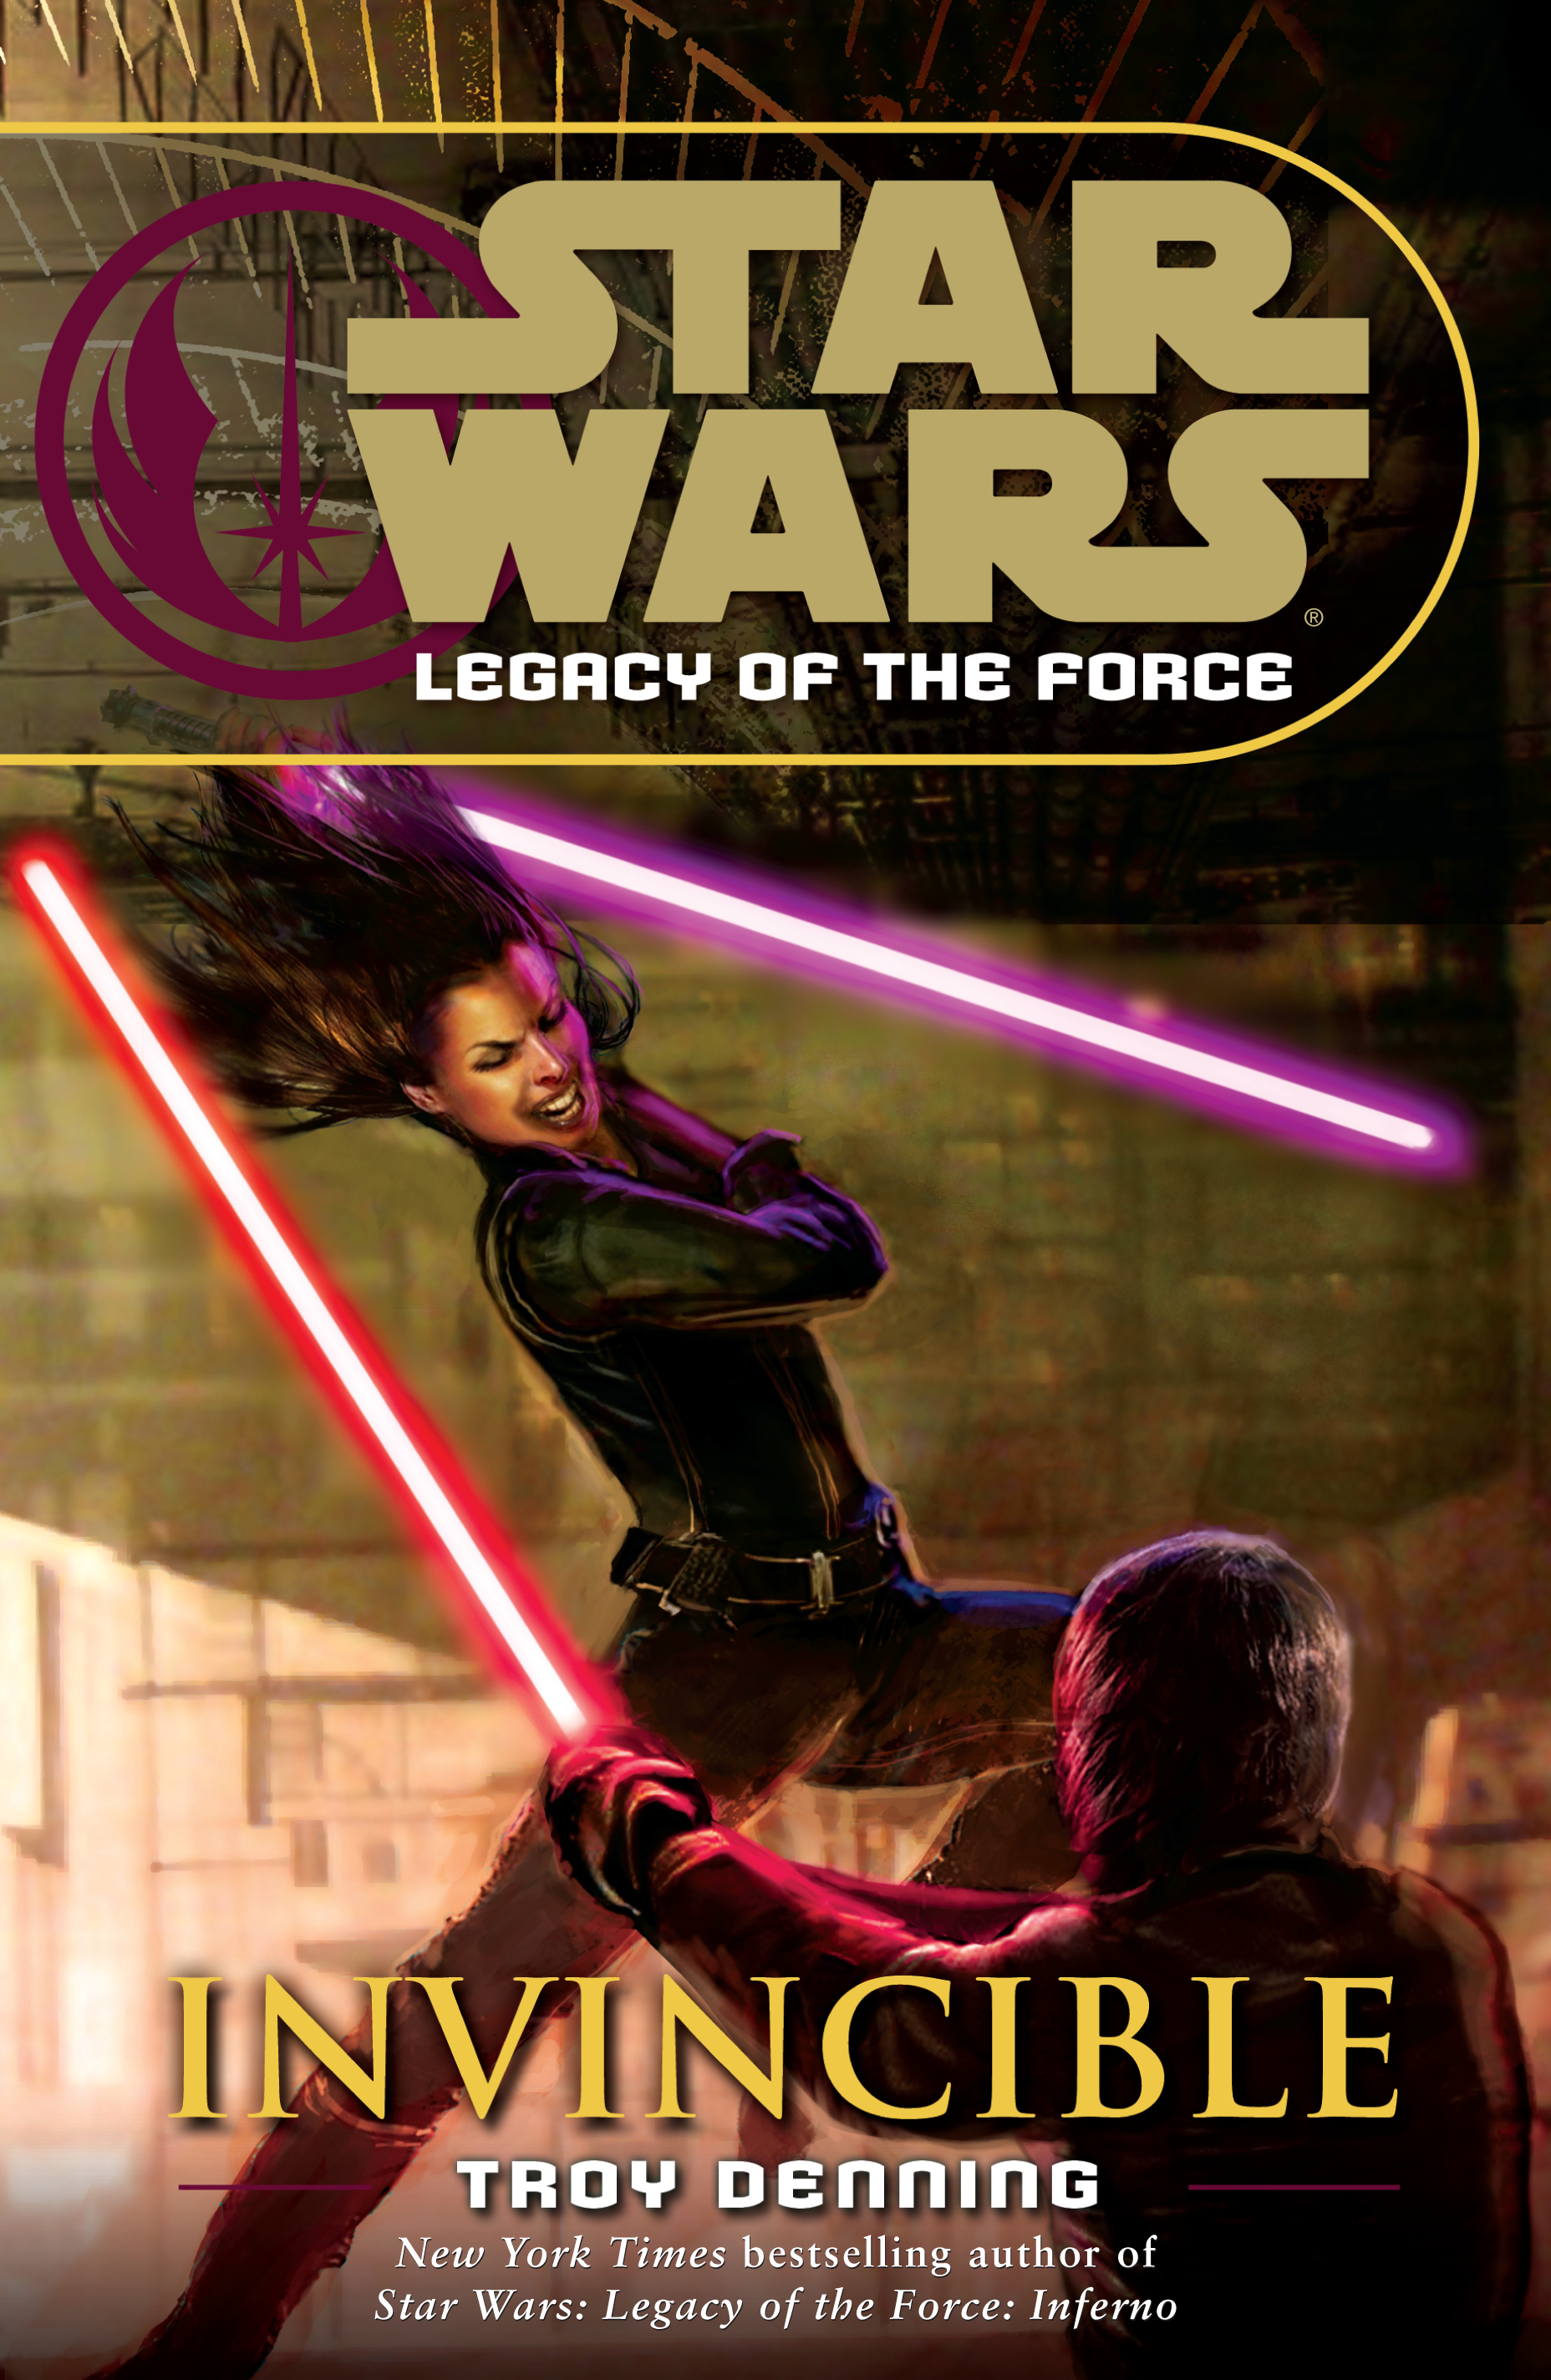 Star Wars Legacy of the Force: Invincible (paperback)